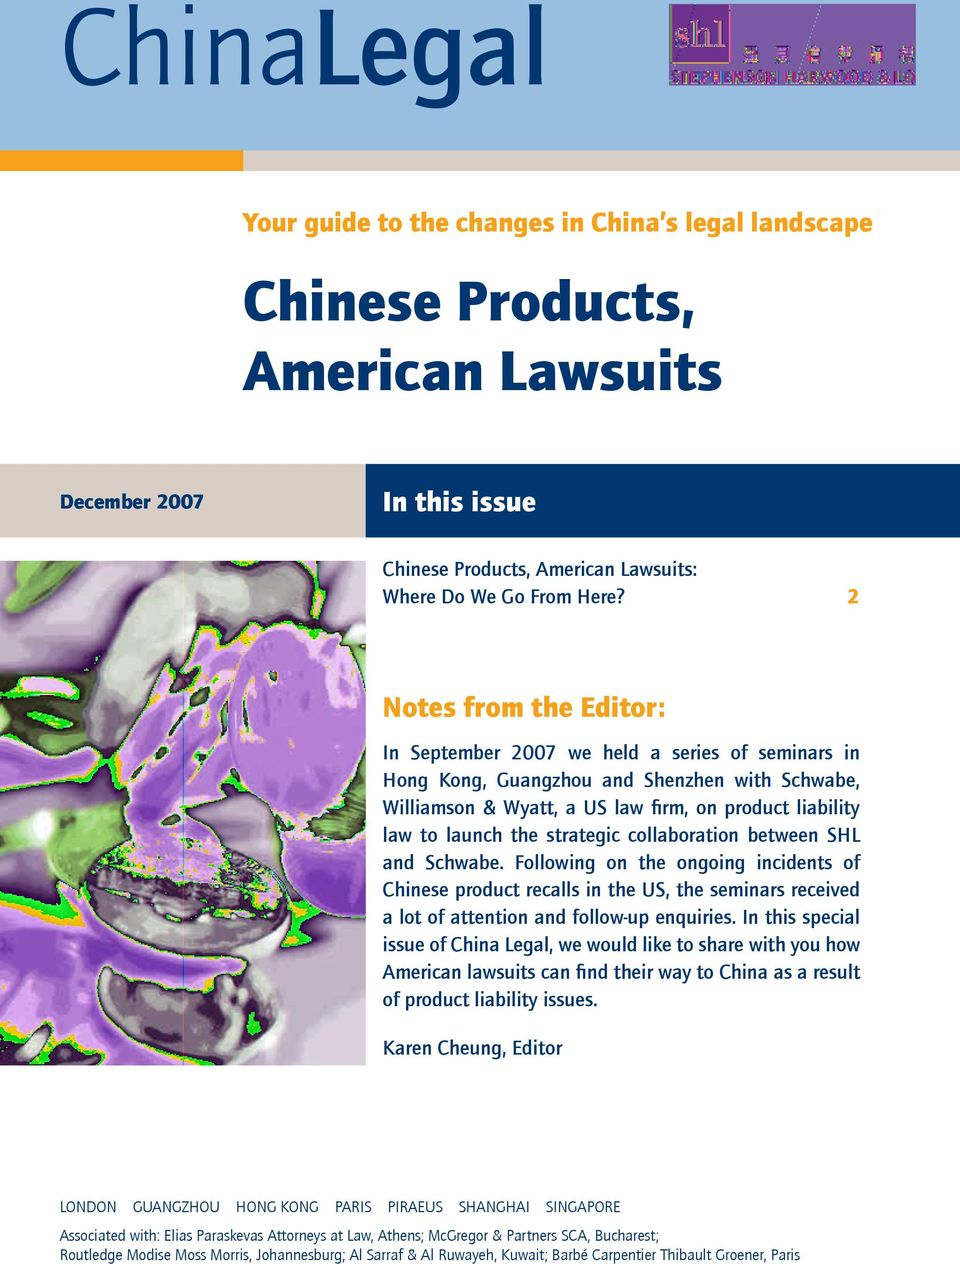 strategic collaboration between SHL and Schwabe. Following on the ongoing incidents of Chinese product recalls in the US, the seminars received a lot of attention and follow-up enquiries.